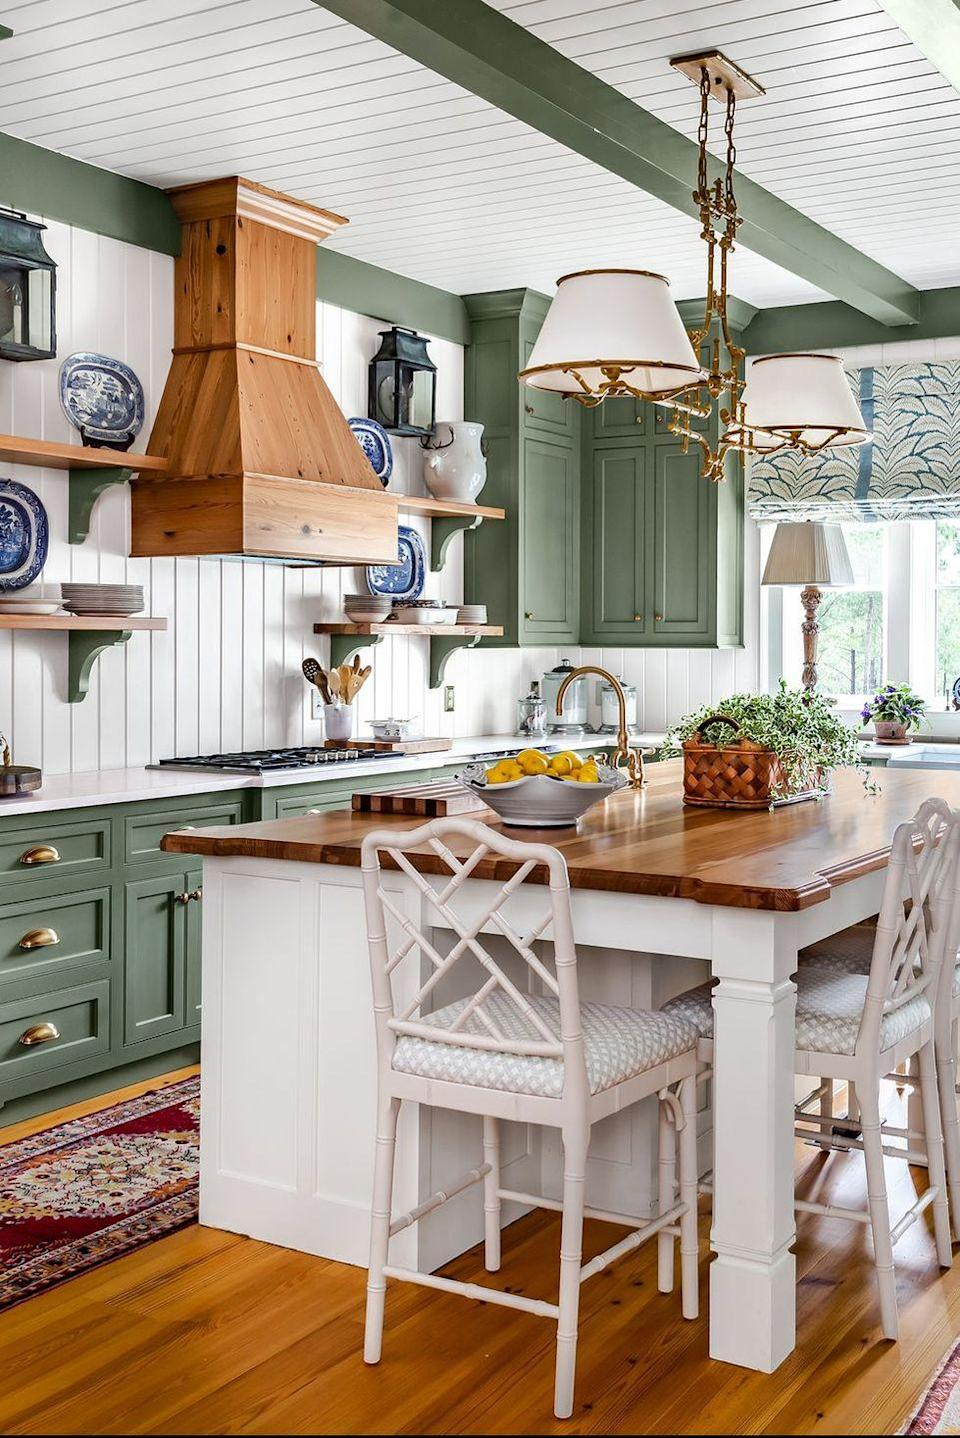 <p>Bright white wood panels, which are also used on the ceiling, give this rustic kitchen a cohesive look.</p>